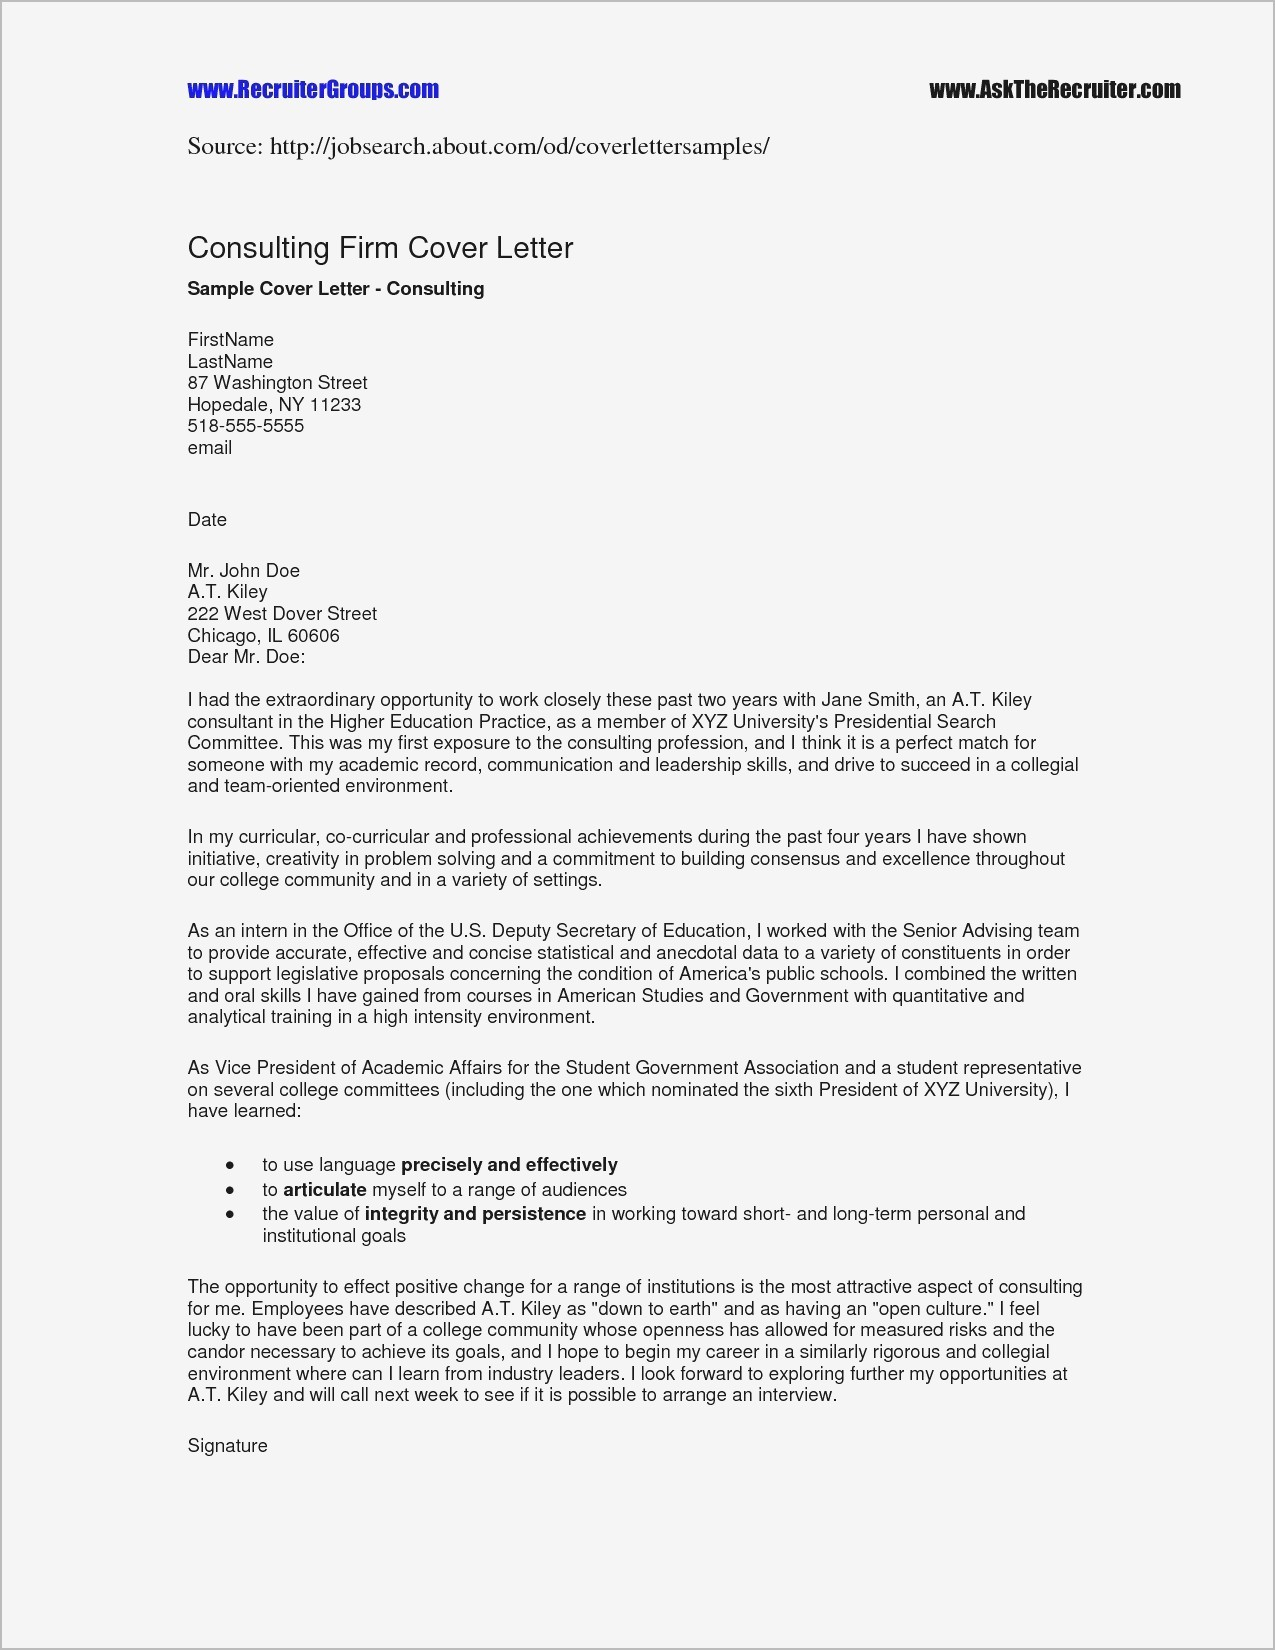 Letter of recommendation template word samples letter cover templates letter of recommendation template word short reference letter template inspirational letter re mendation spiritdancerdesigns Images